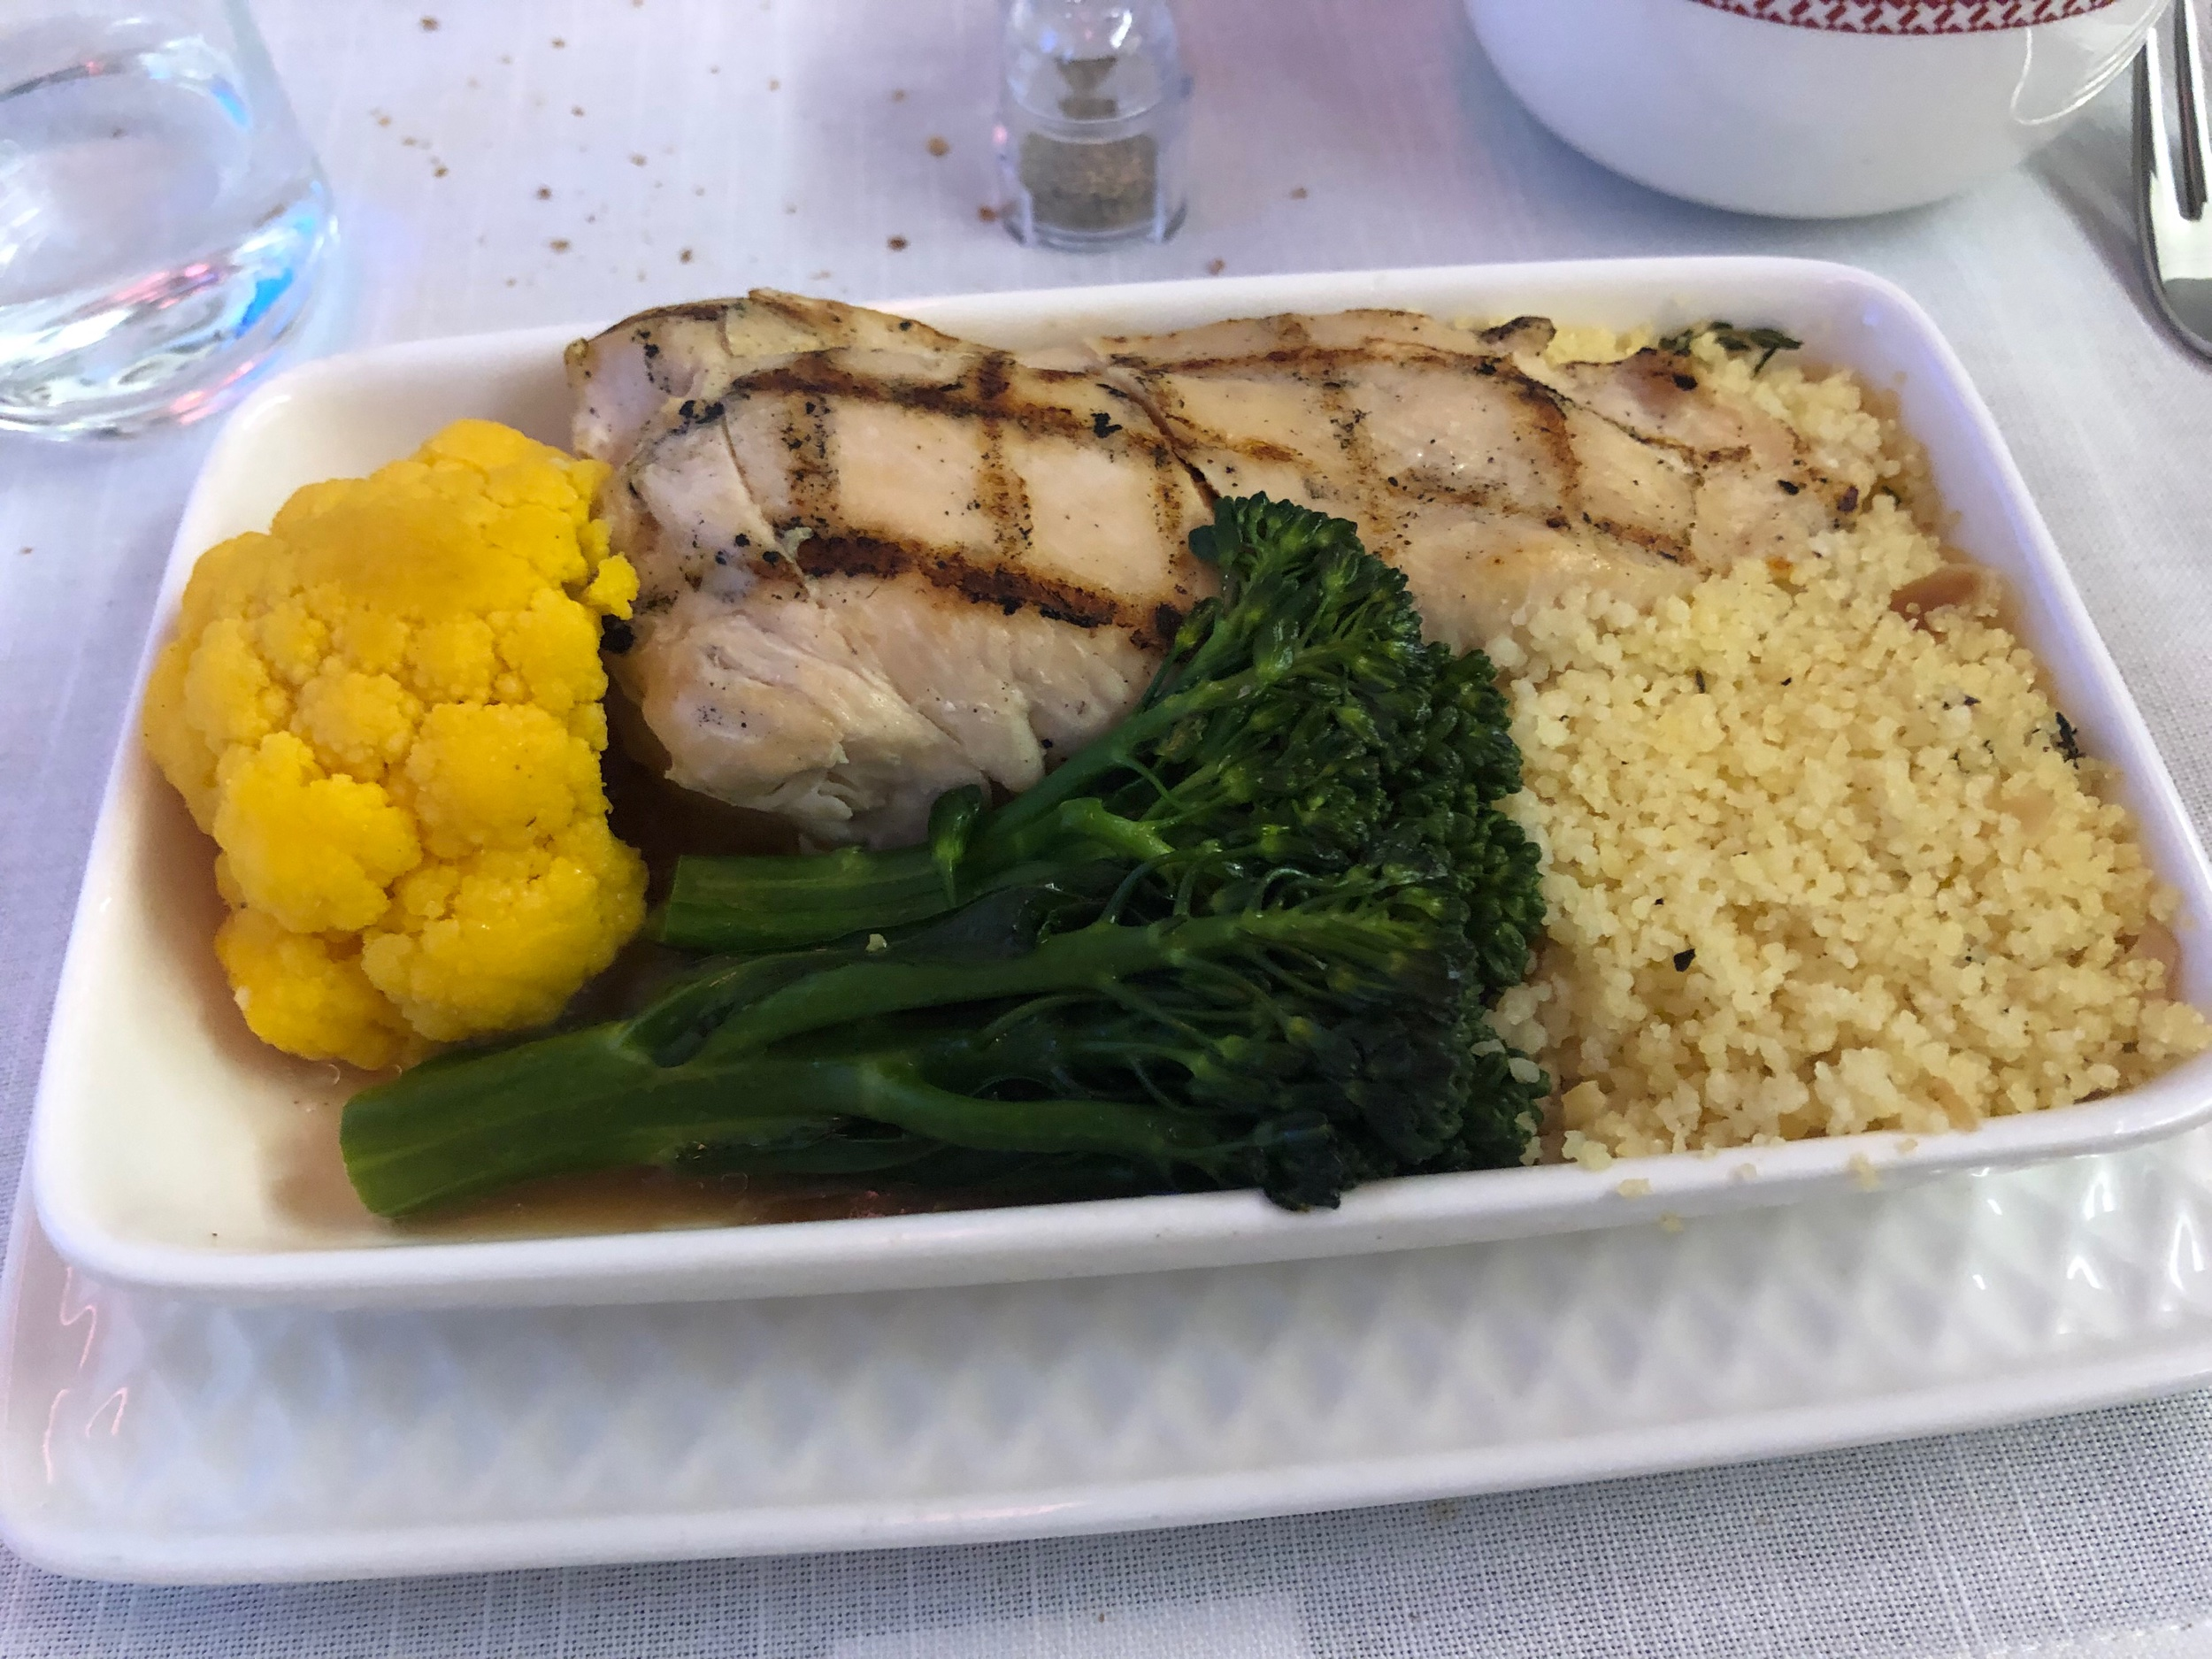 """My selection from Iberia's """"main course"""": grilled chicken with demi glace sauce, couscous, yellow cauliflower and broccolini"""